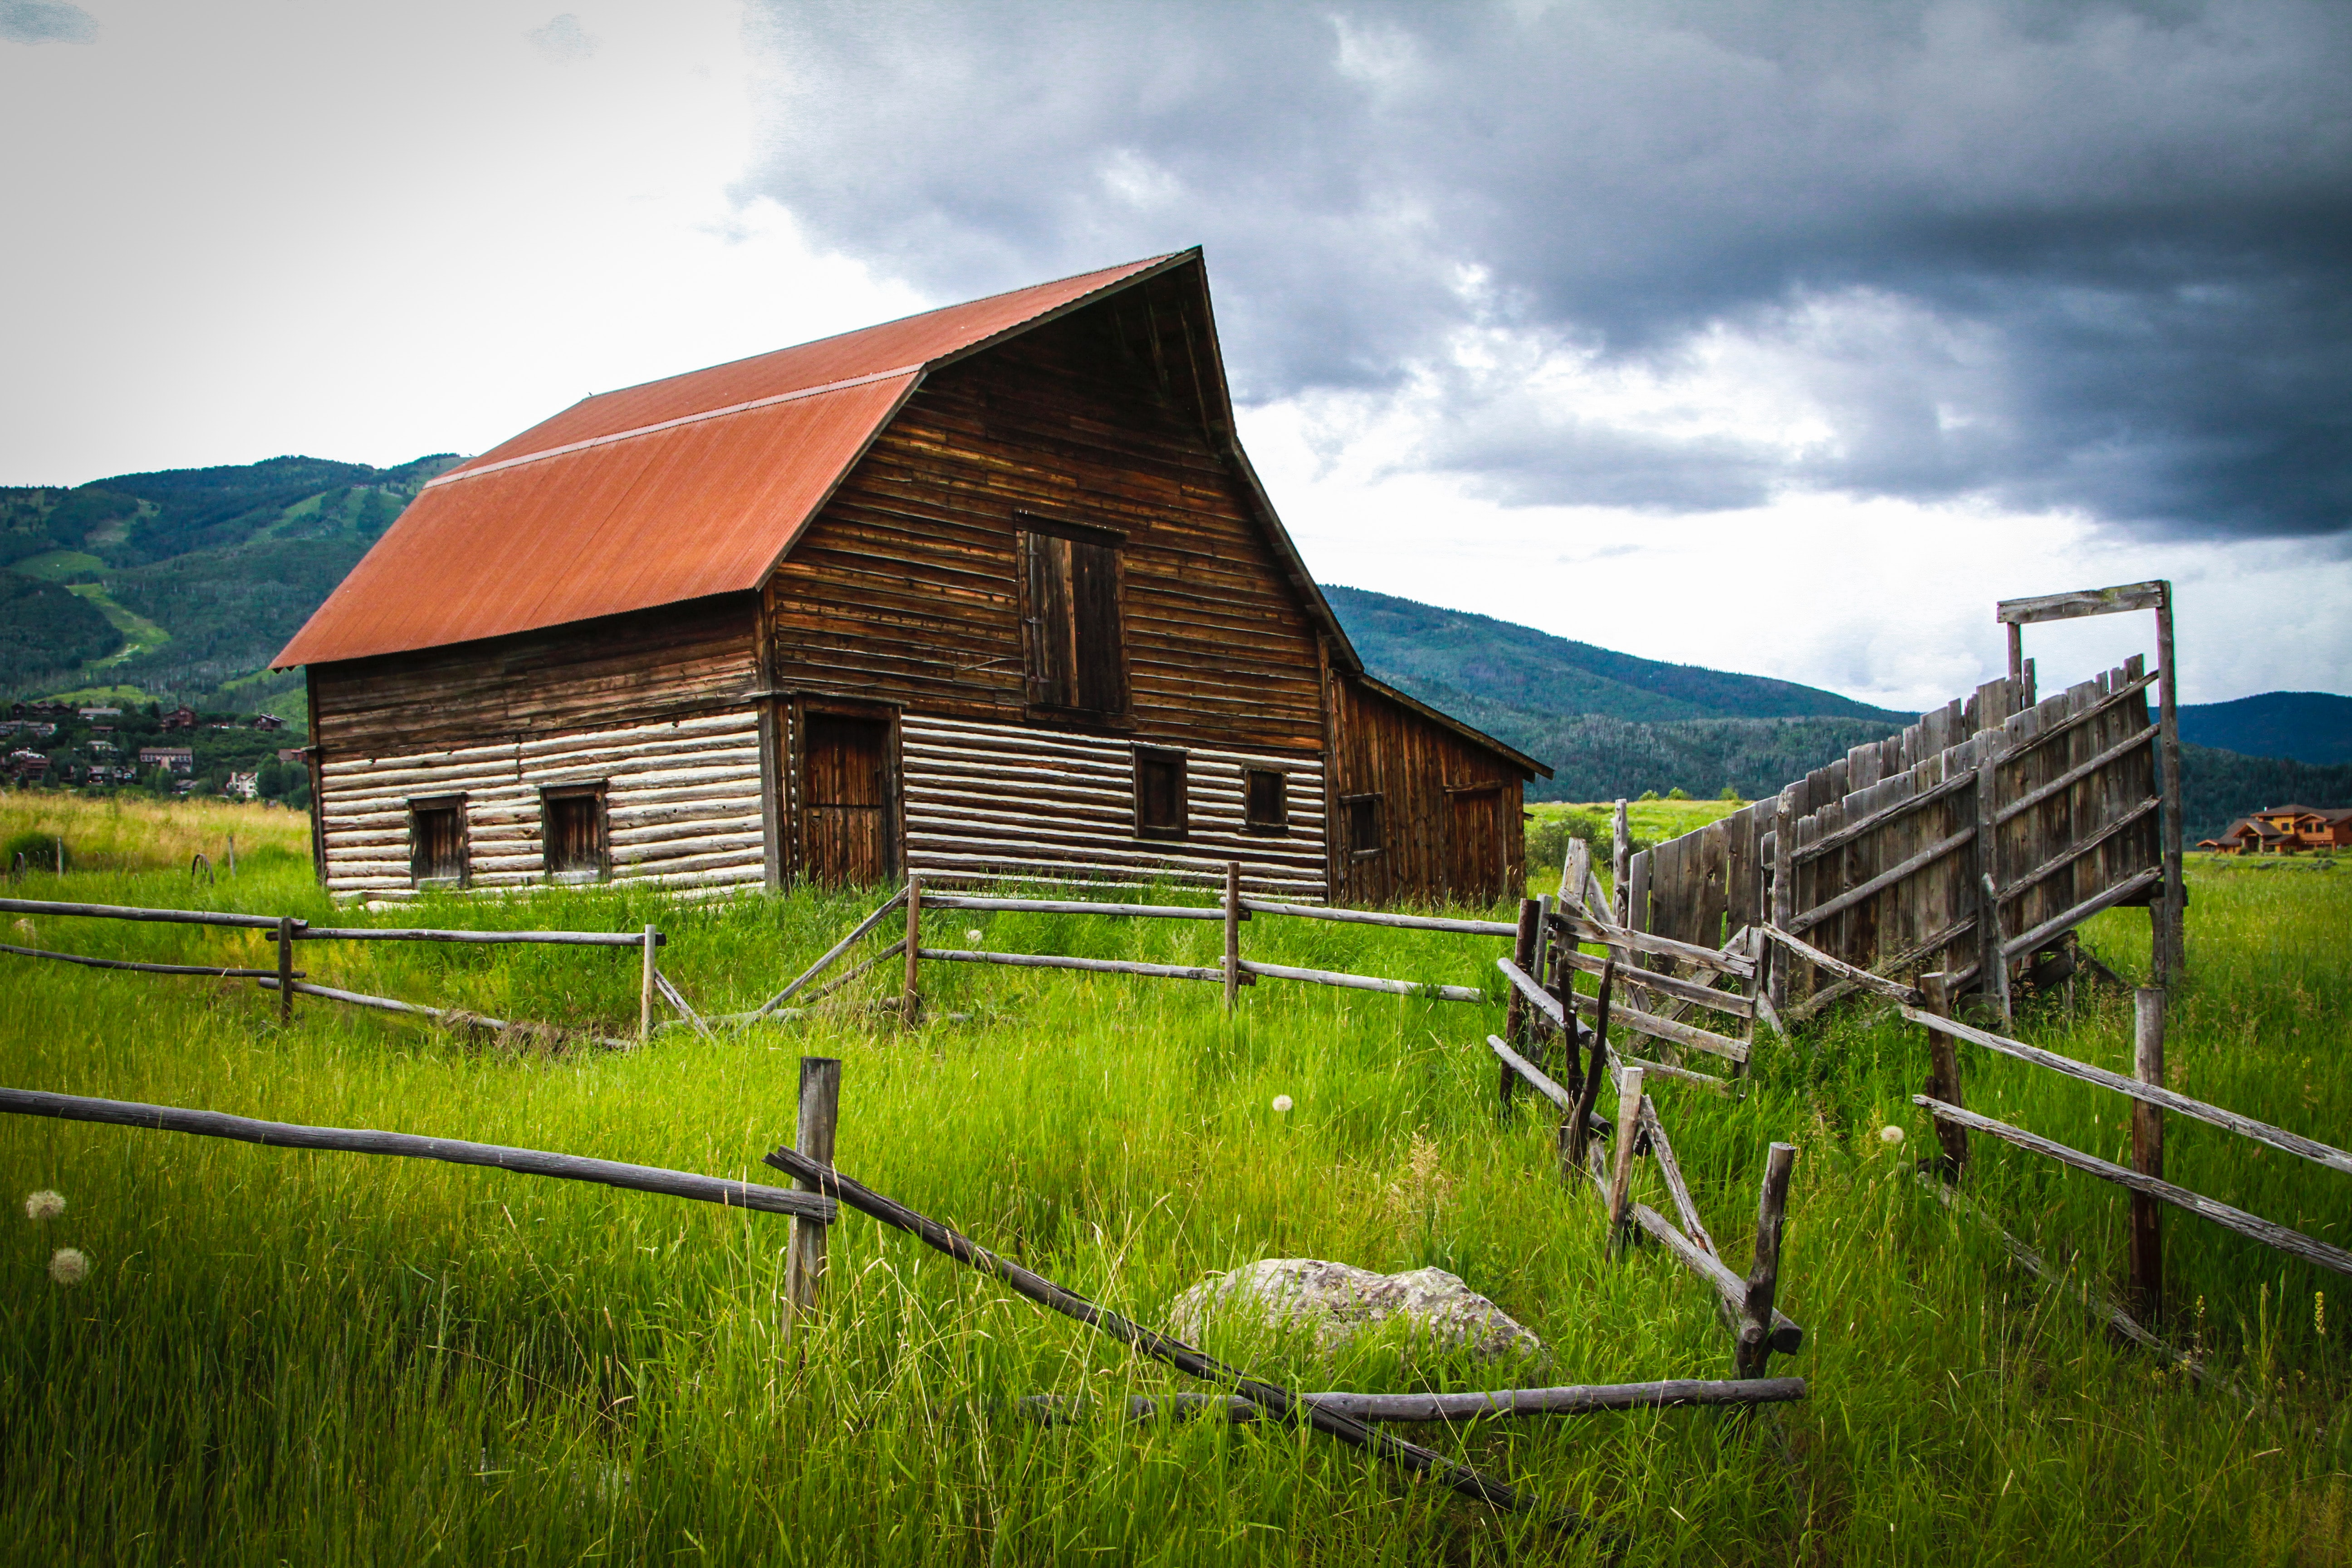 Picture of a barn surrounded by old wooden fences